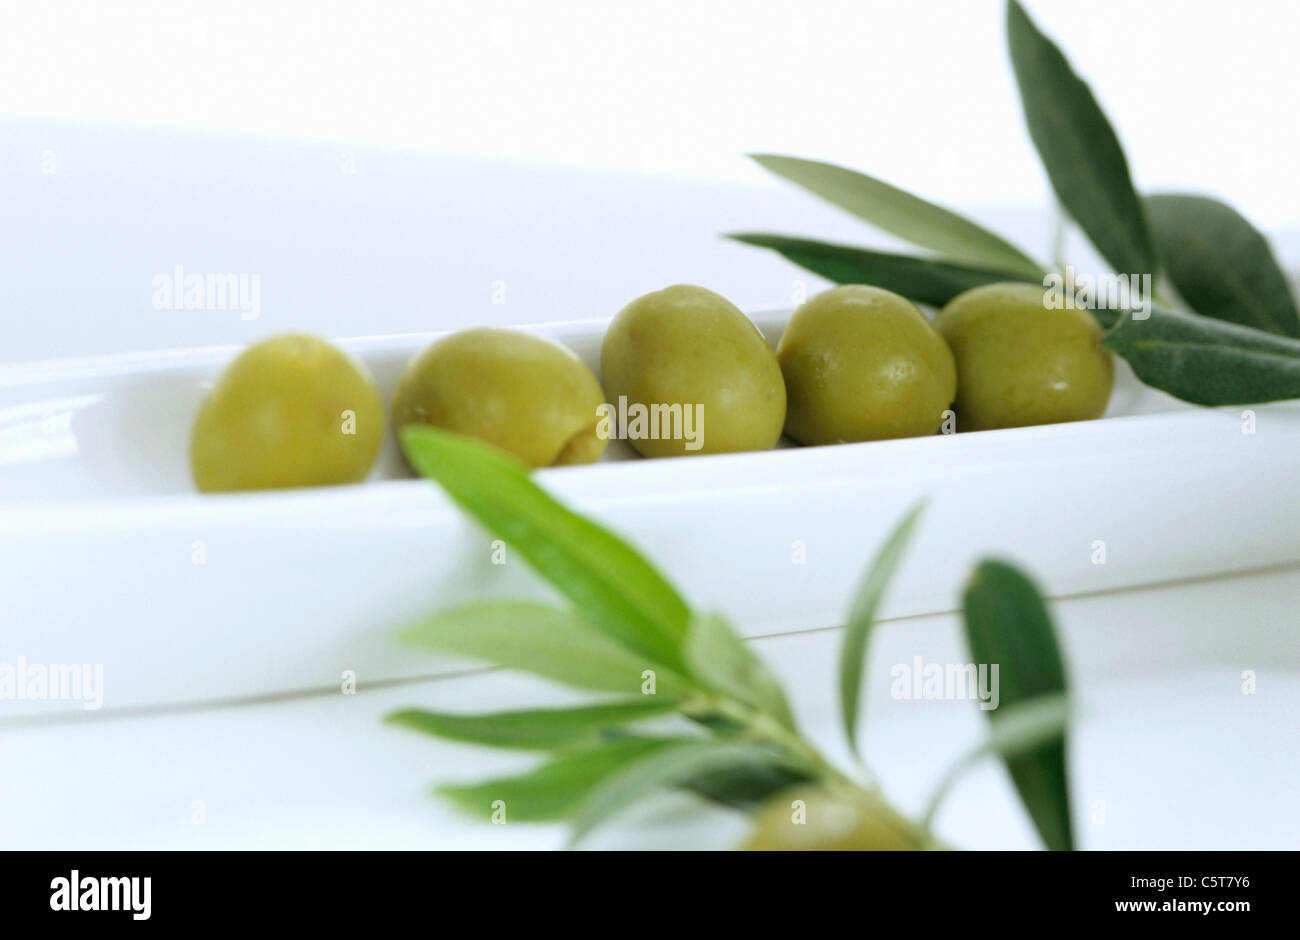 green olives as a starter - Stock Image